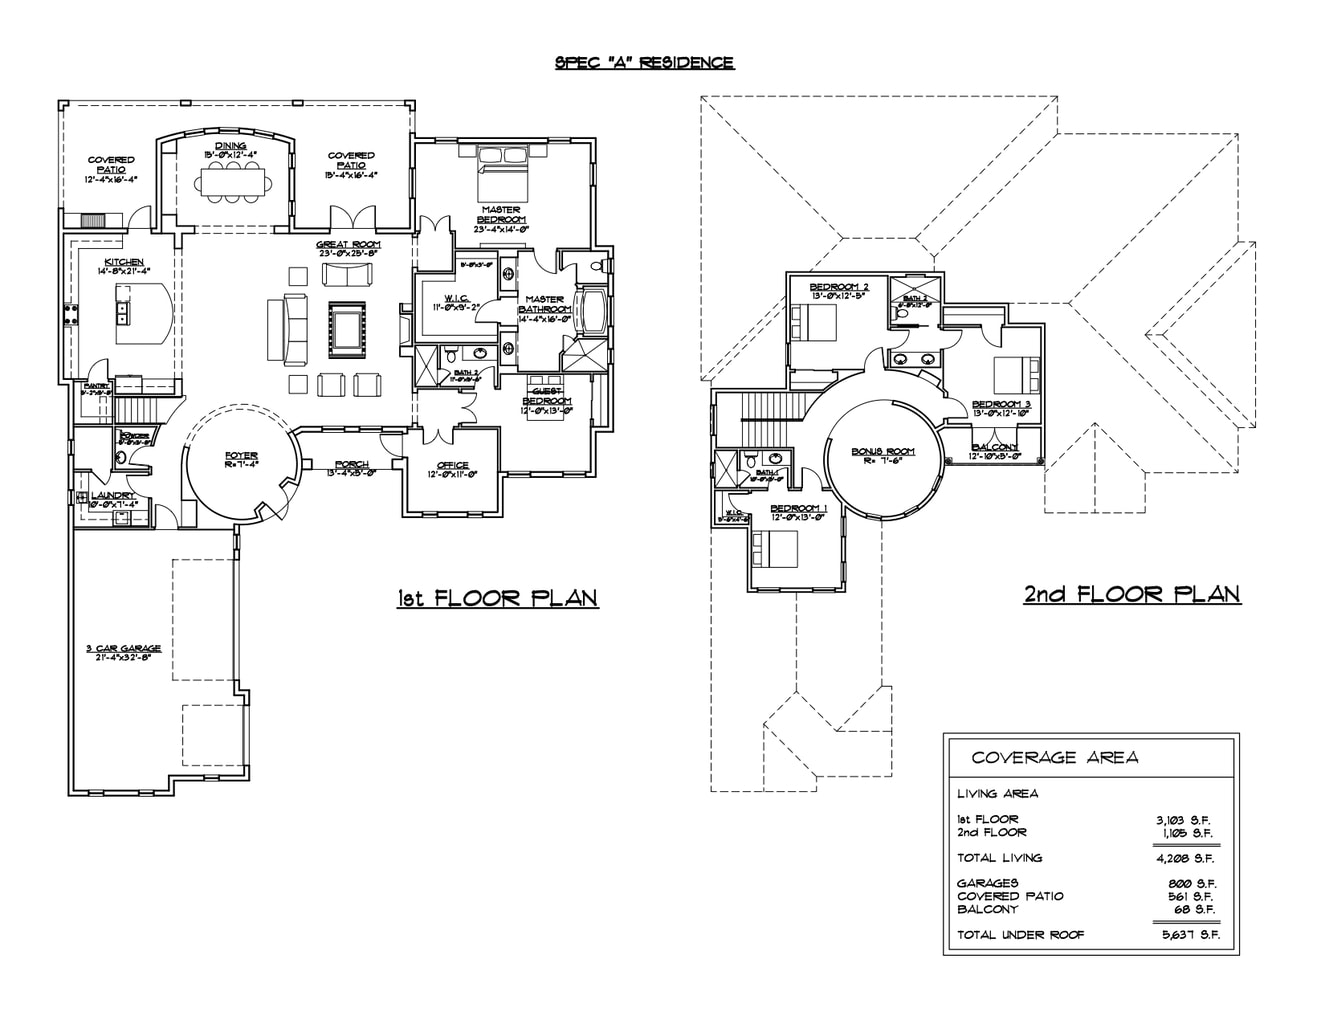 How to squeeze 6 000 square feet into a 4 000 square foot home for 6000 square foot house plans